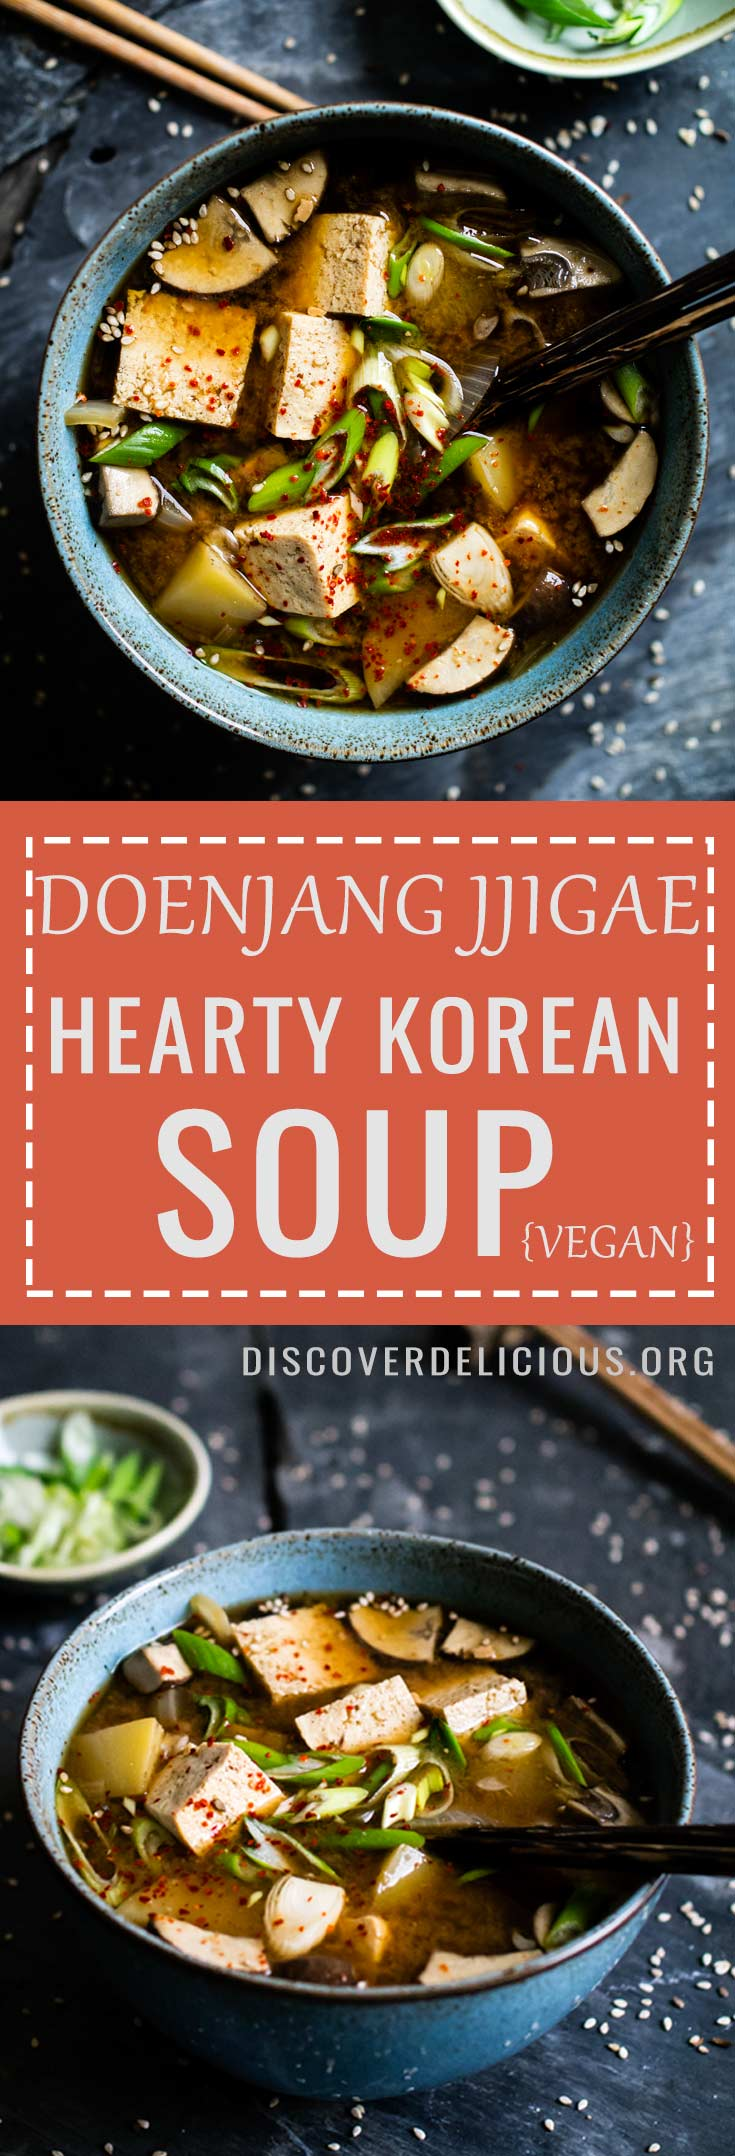 Doenjang Jjigae (hearty Korean soup). Popular Korean comfort food + vegan! Quick and easy to make. | Discover Delicious |www.discoverdelicious.org